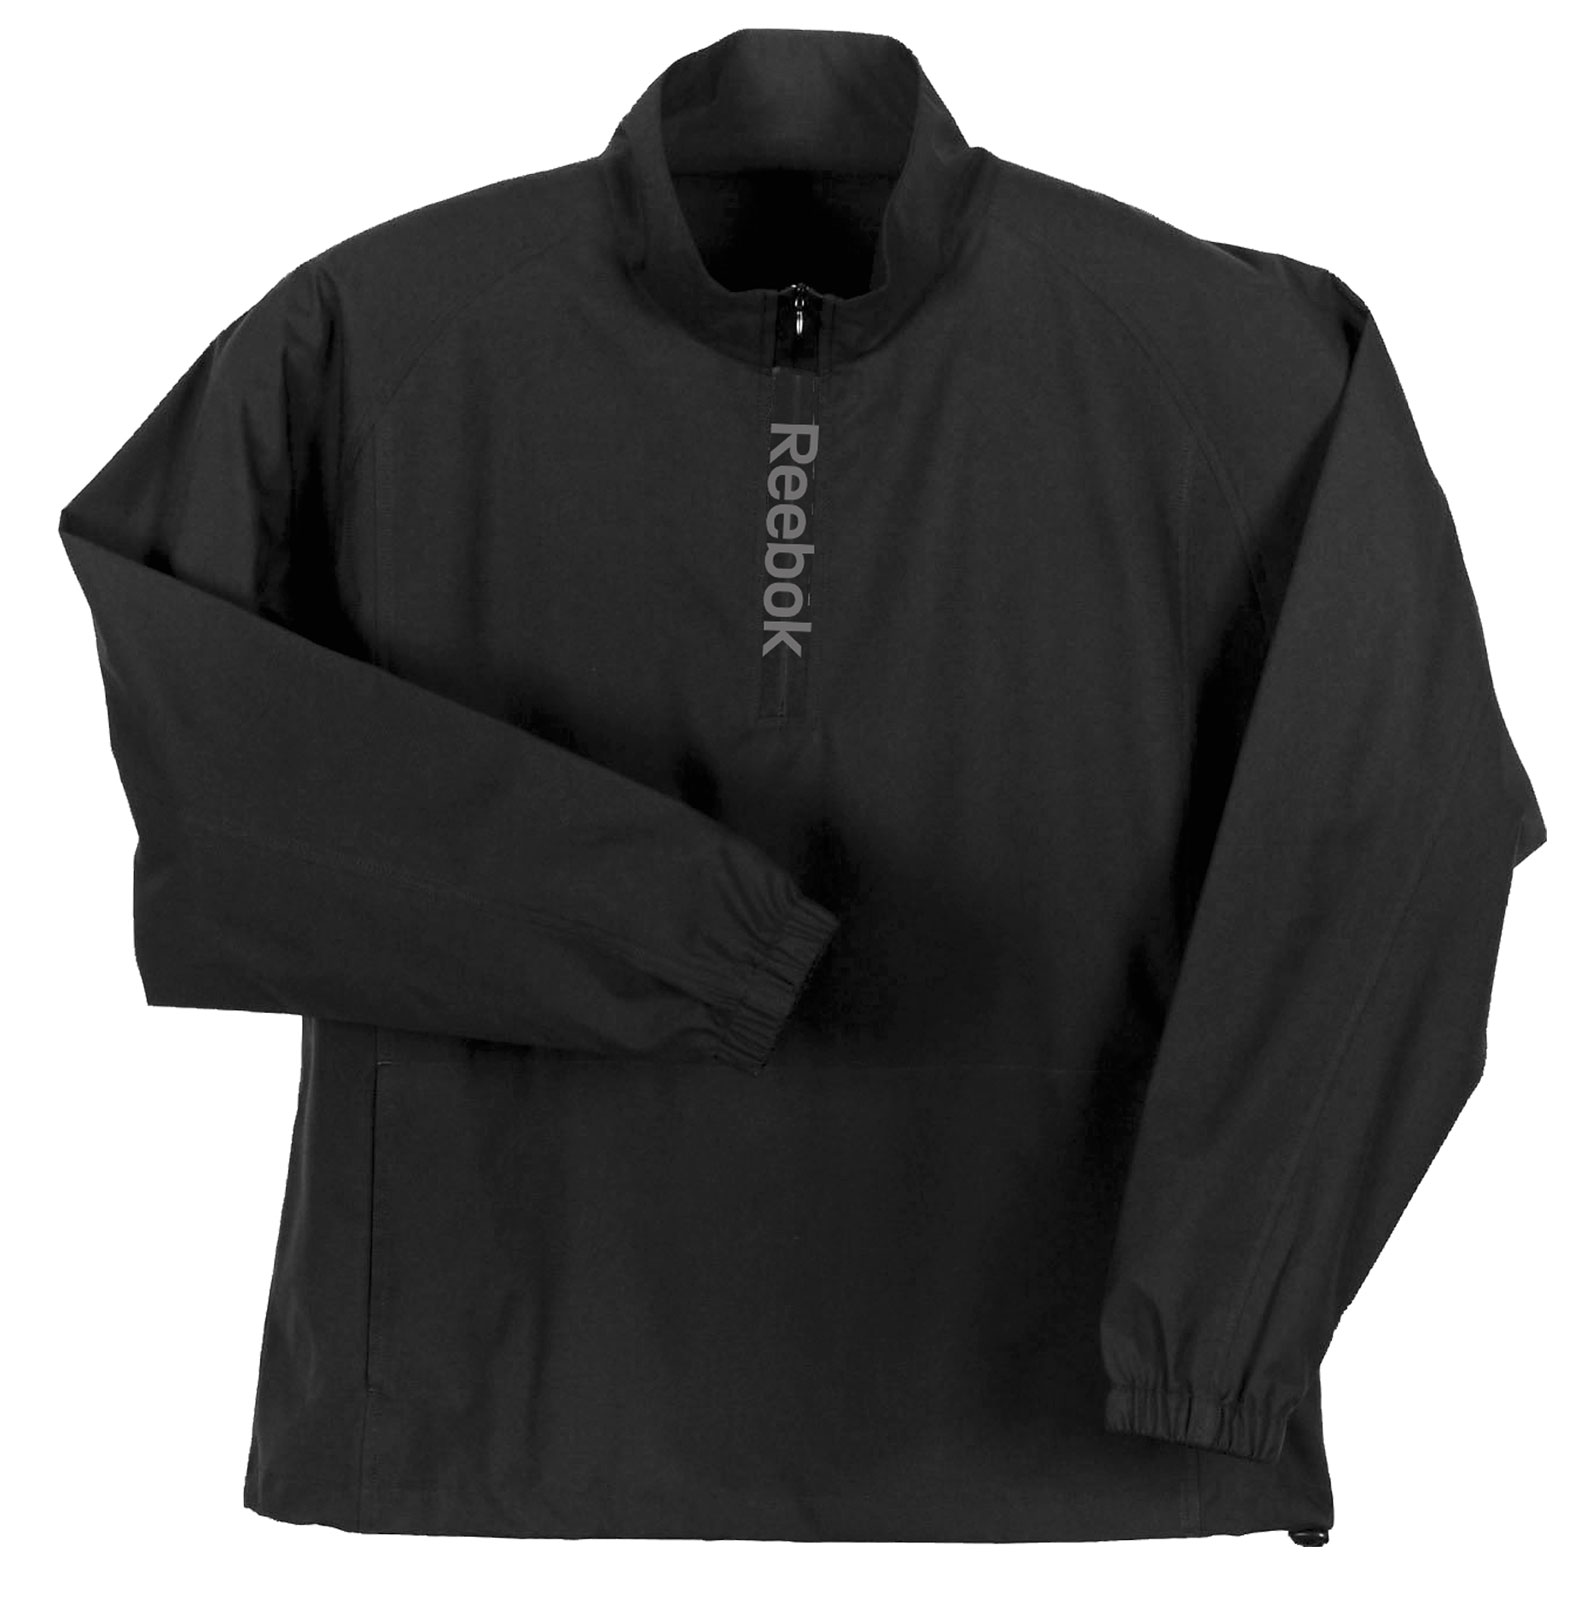 Packable Windshirt by Reebok